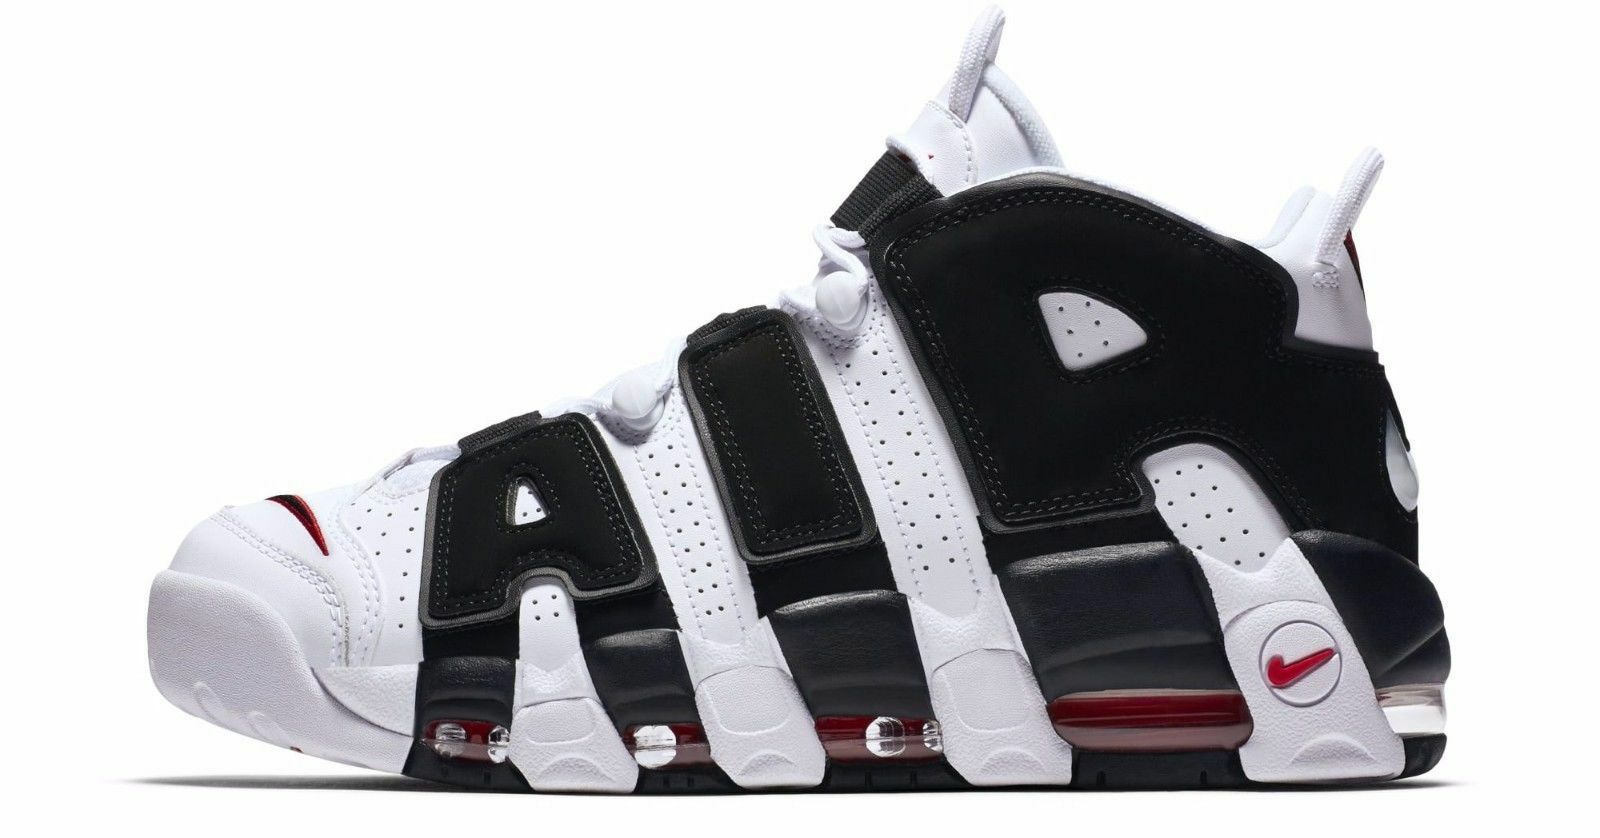 Nike Air More Uptempo PE White Black Black Black Red 96' size 13. Scottie Pippen. 414962-105 db2edc